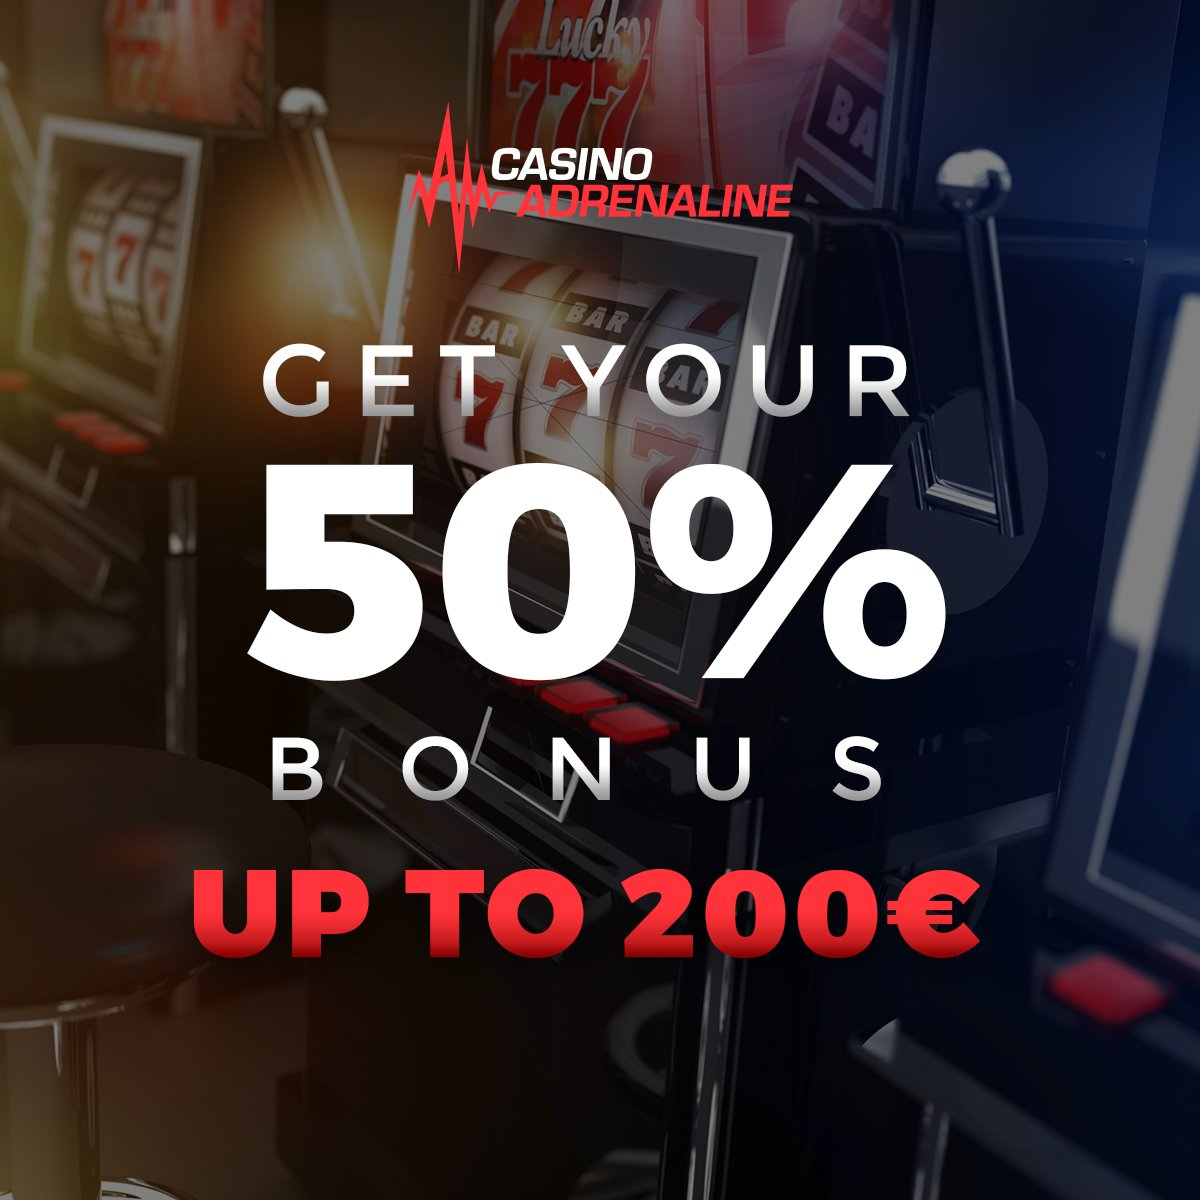 test Twitter Media - Don't miss the opportunity to play with 50% bonus up to 200 EUR this Friday. 50x bonus and deposit!! 😲😎#CasinoAdrenaline #CasinoAdrenalingaming #casinos #slot #casinoluck #enjoythegame https://t.co/ofNVTRVRfY